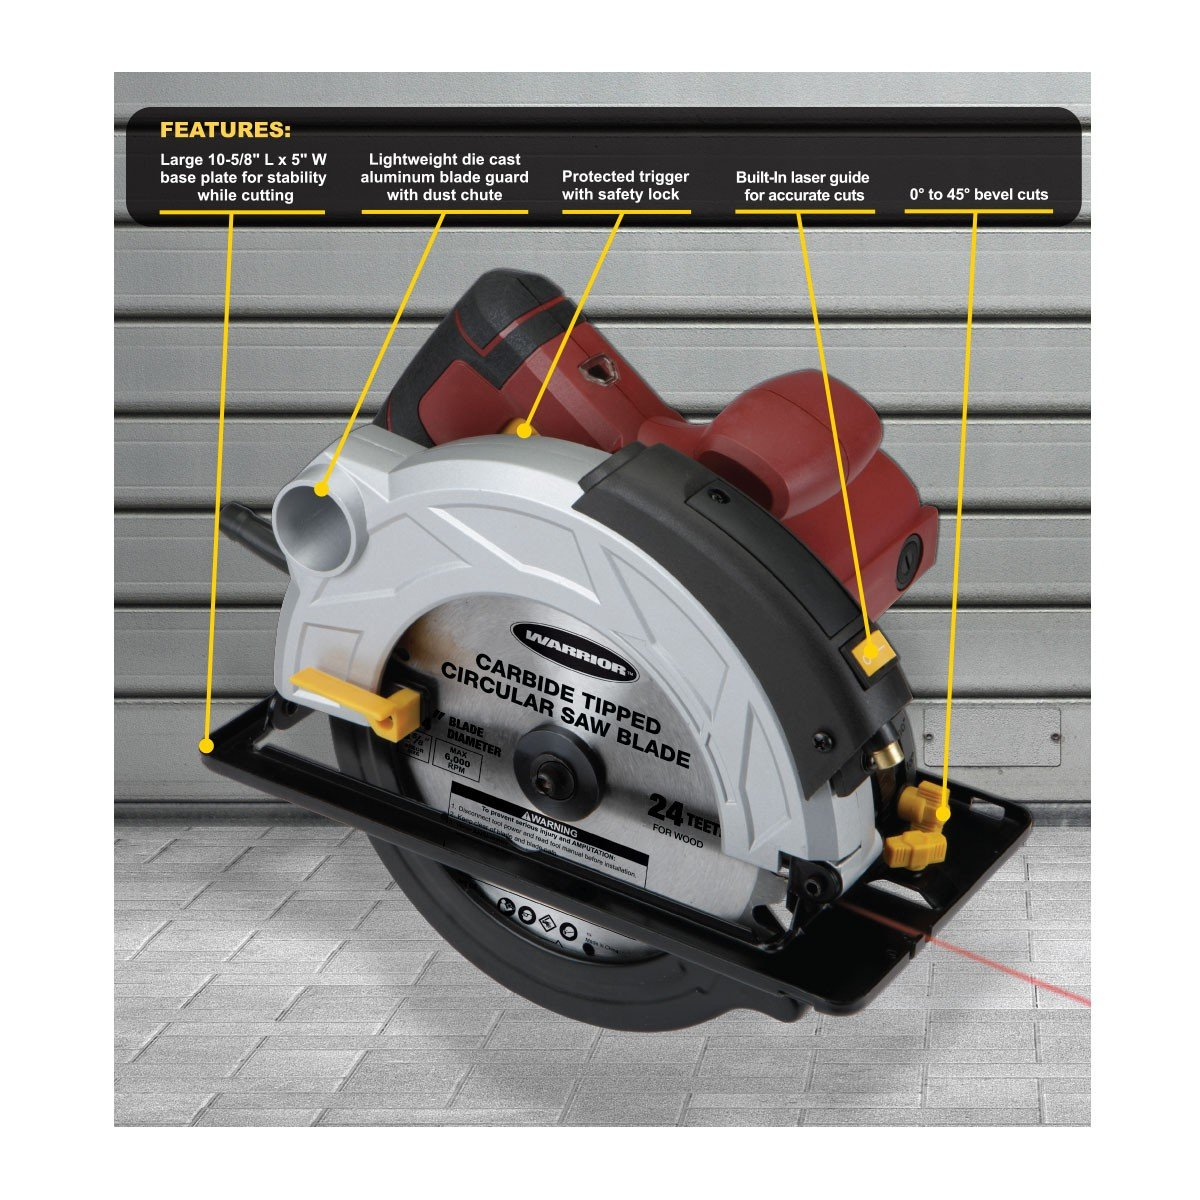 Chicago electric 7 14 circular saw with laser guide system chicago electric 7 14 circular saw with laser guide system amazon greentooth Gallery